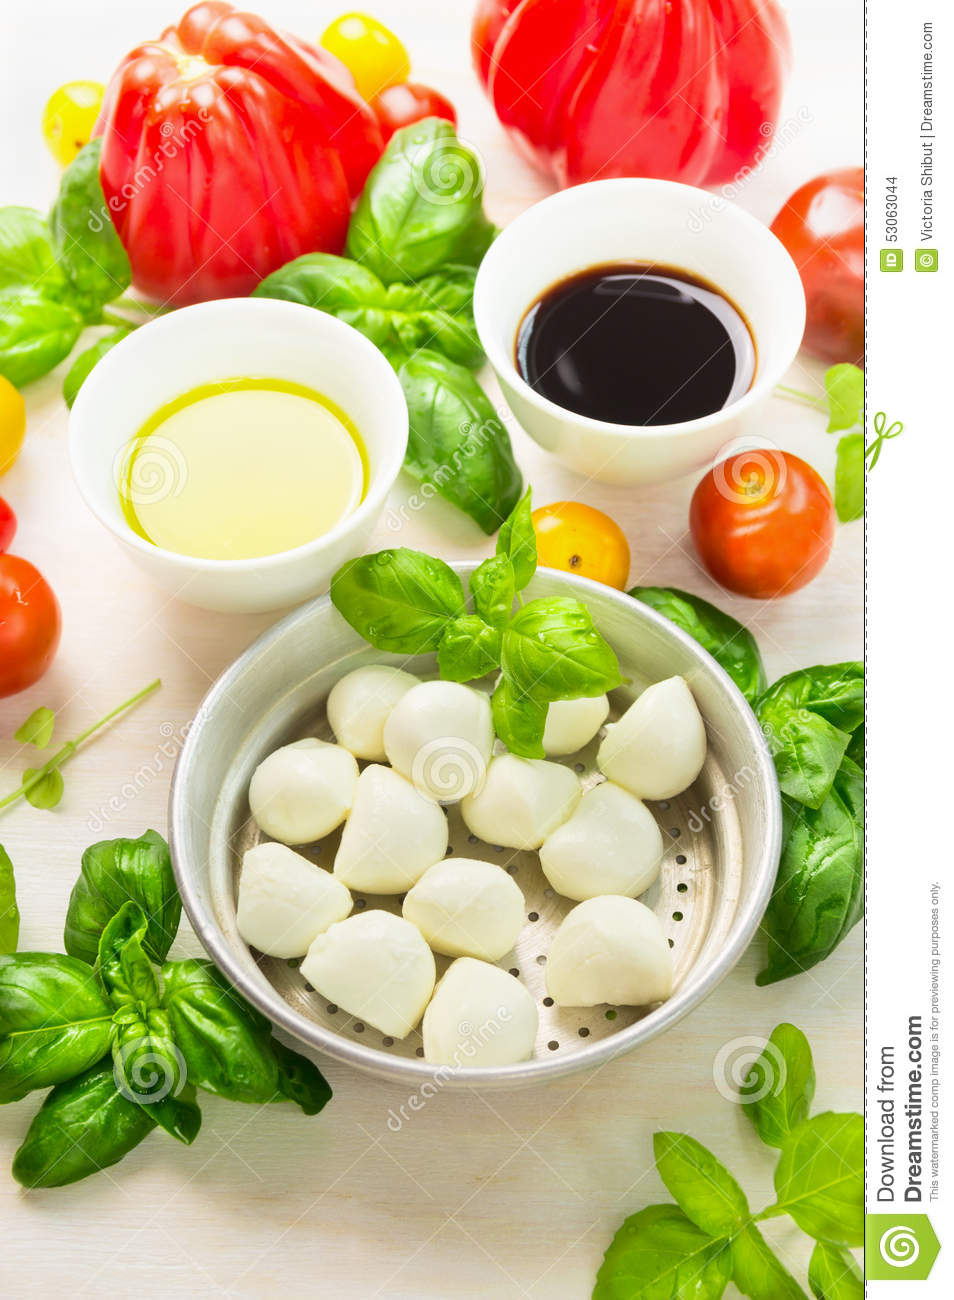 Mozzarella in bowl with basil leaves,oil,tomatoes and balsamic vinegar, italian food ingredients